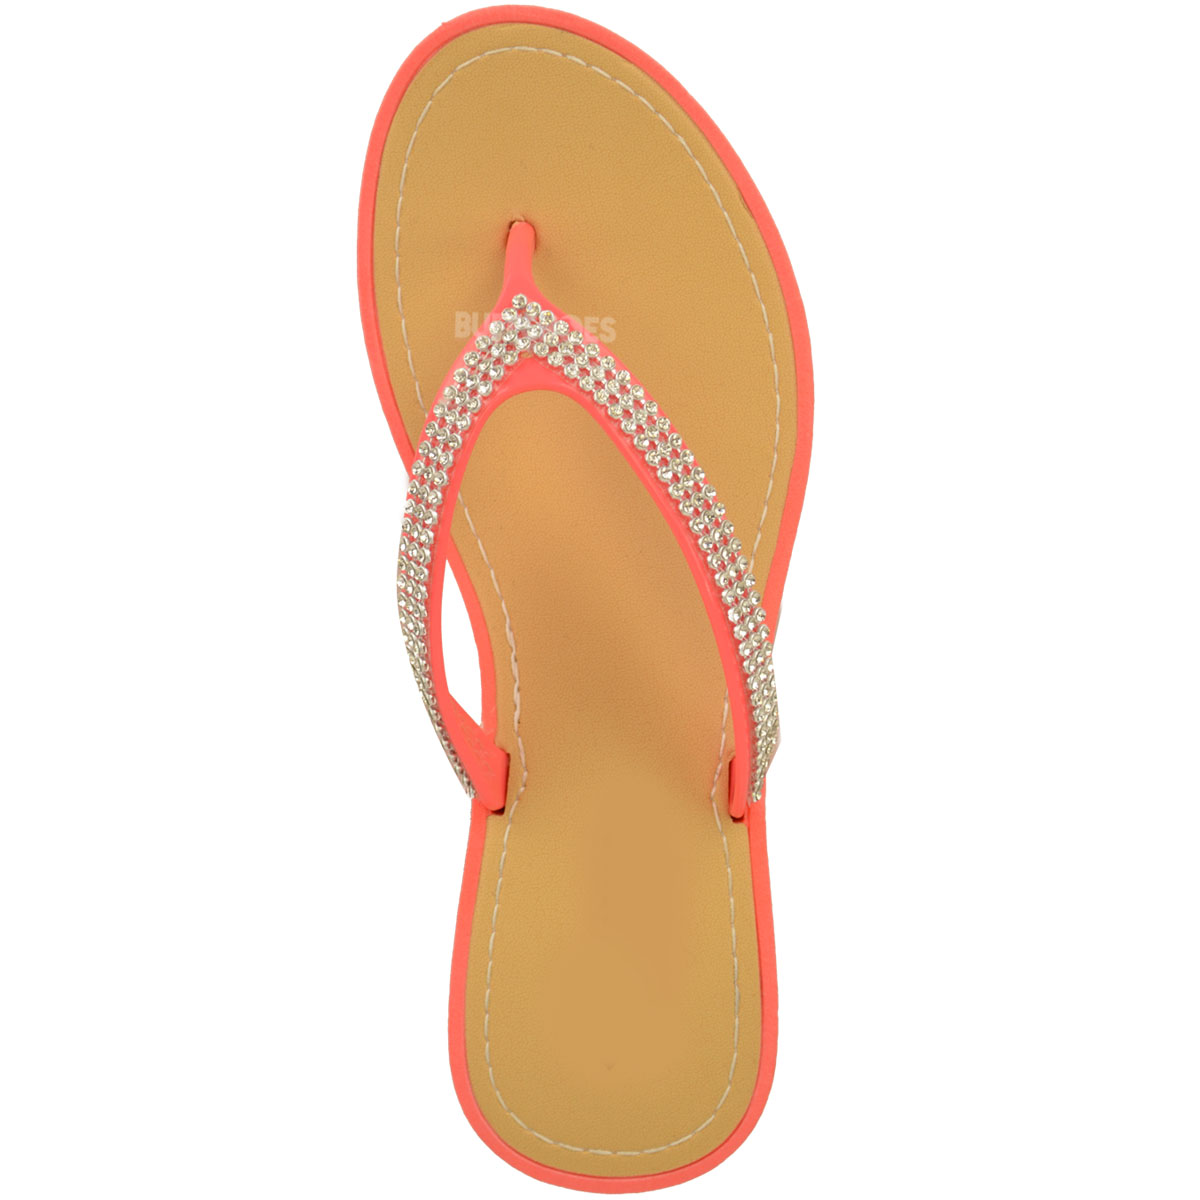 NEW-JELLY-SANDALS-WOMENS-LADIES-DIAMANTE-SUMMER-HOLIDAY-COMFORTS-FLIP-FLOPS-SIZE thumbnail 19